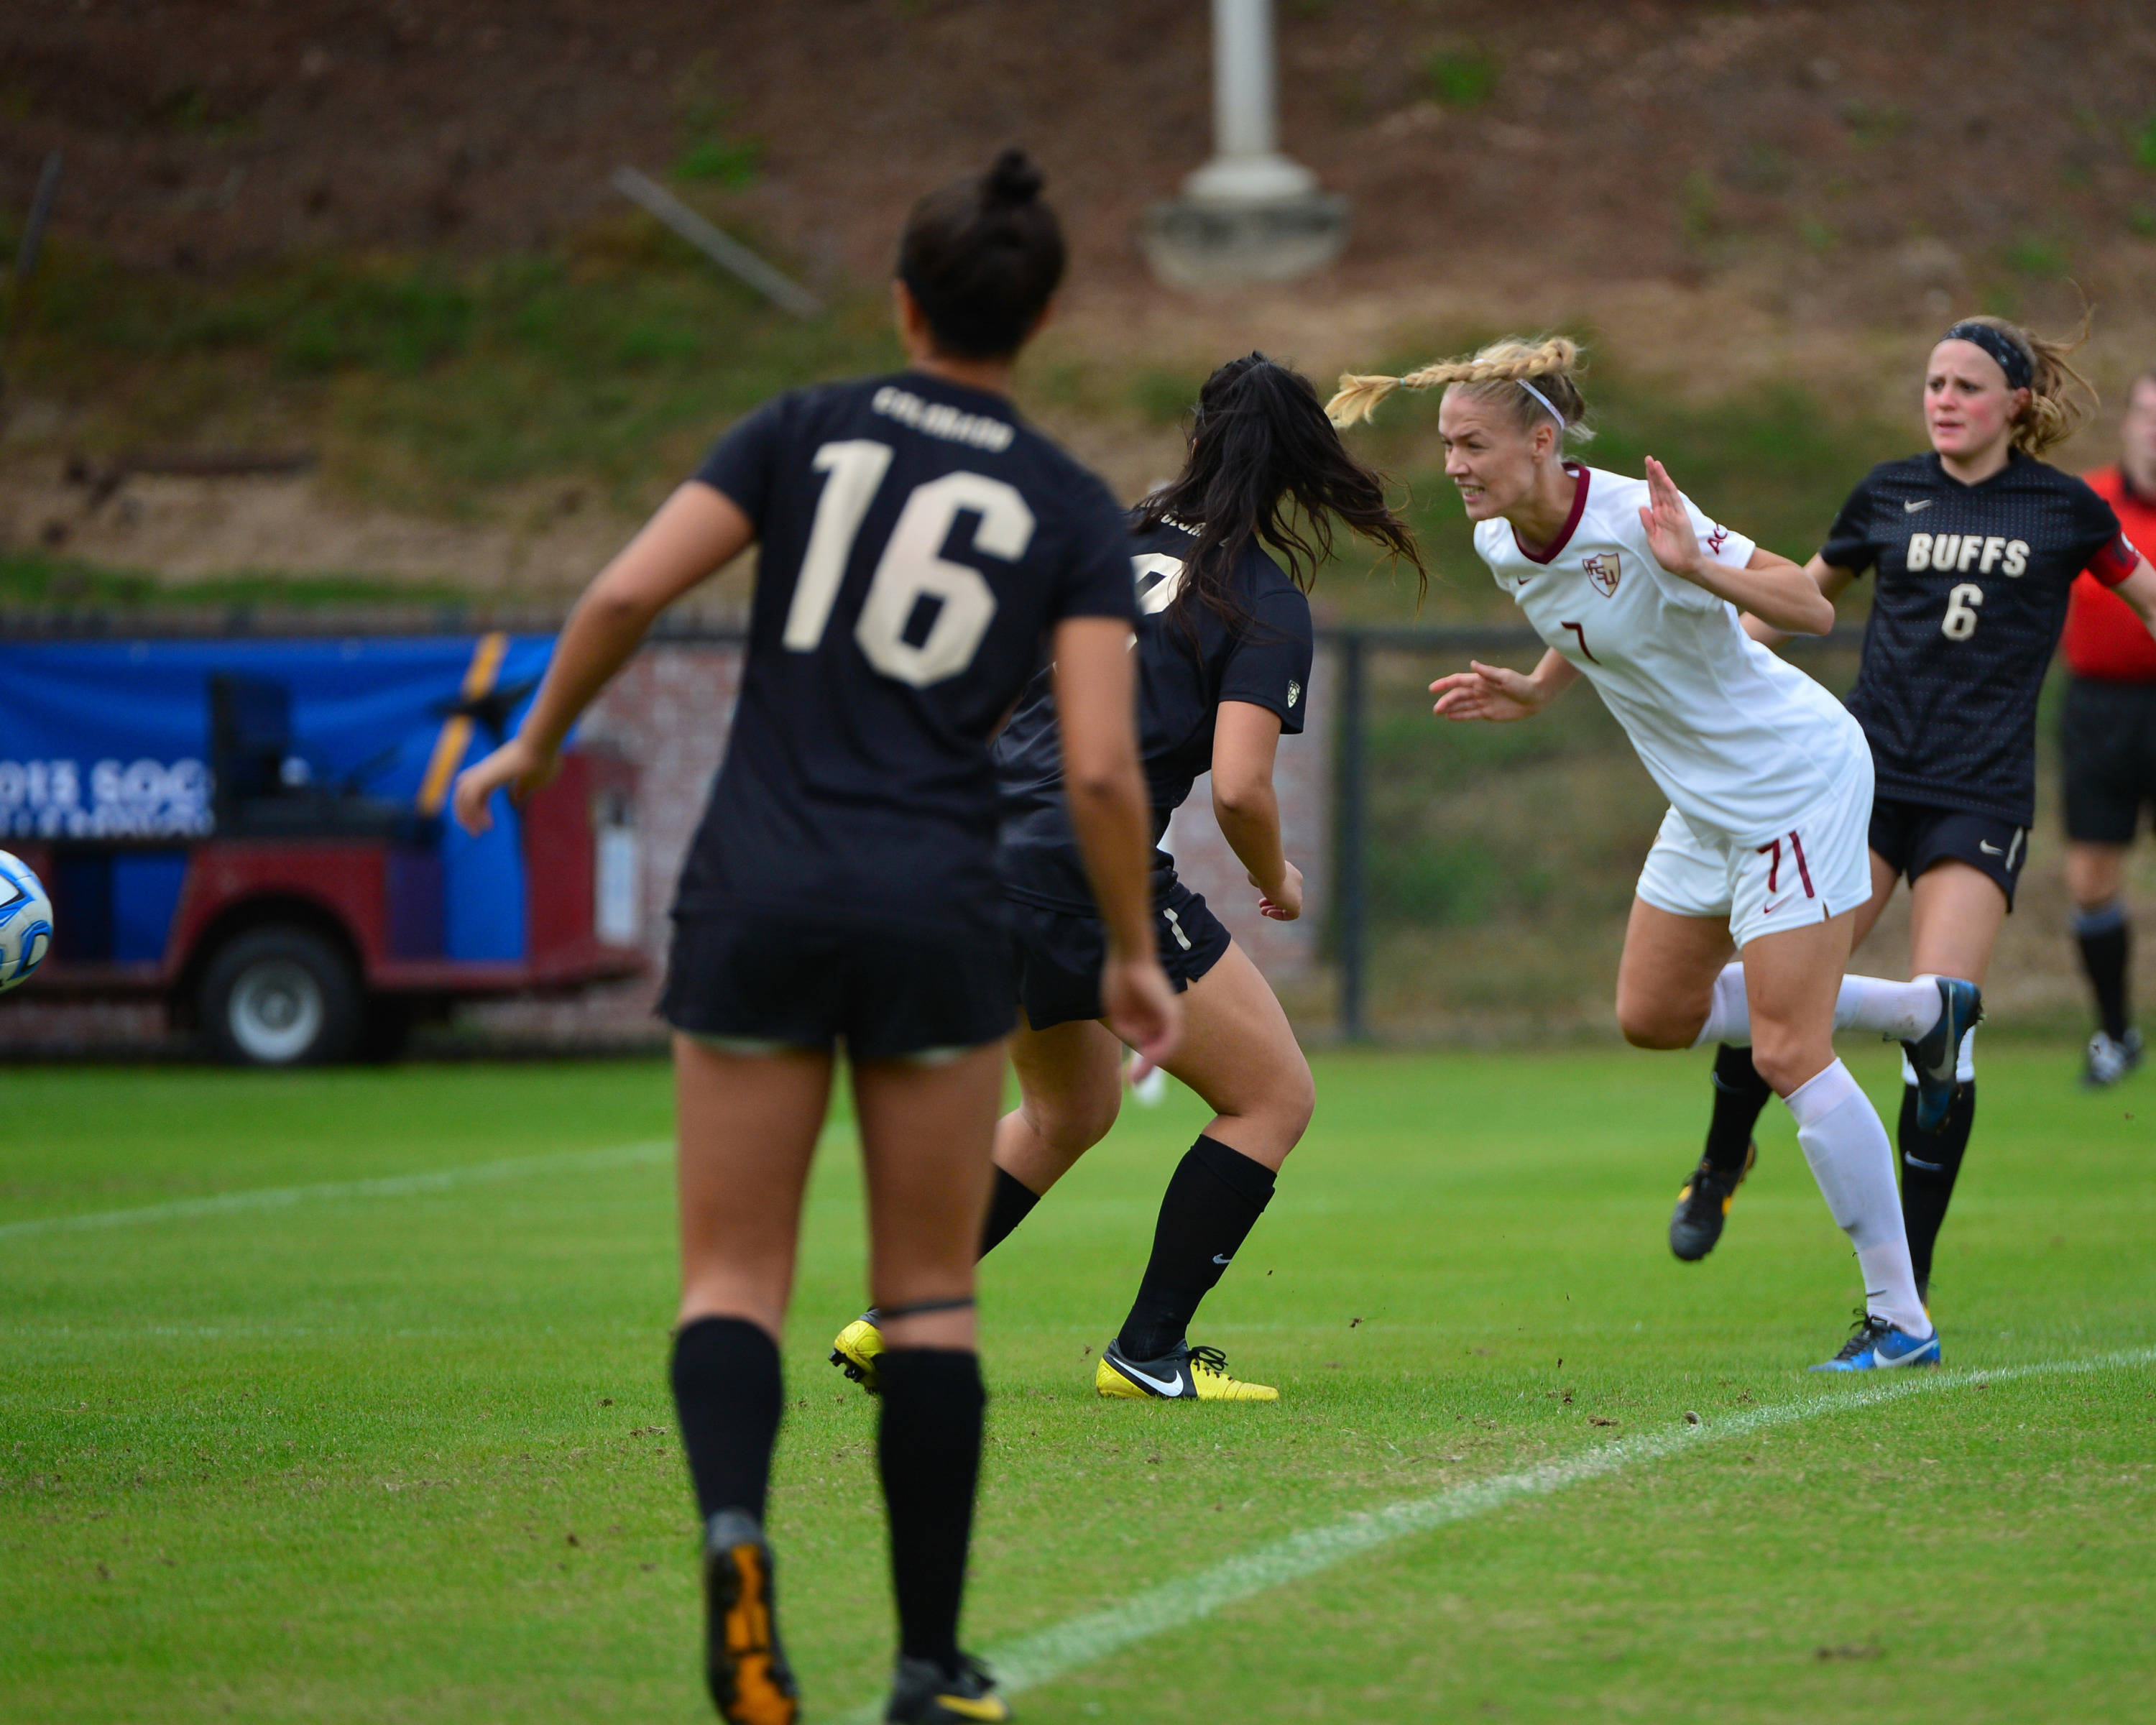 Dagny Brynjarsdottir heads in her first goal of the game just one minute and 19 seconds into the start of the match.